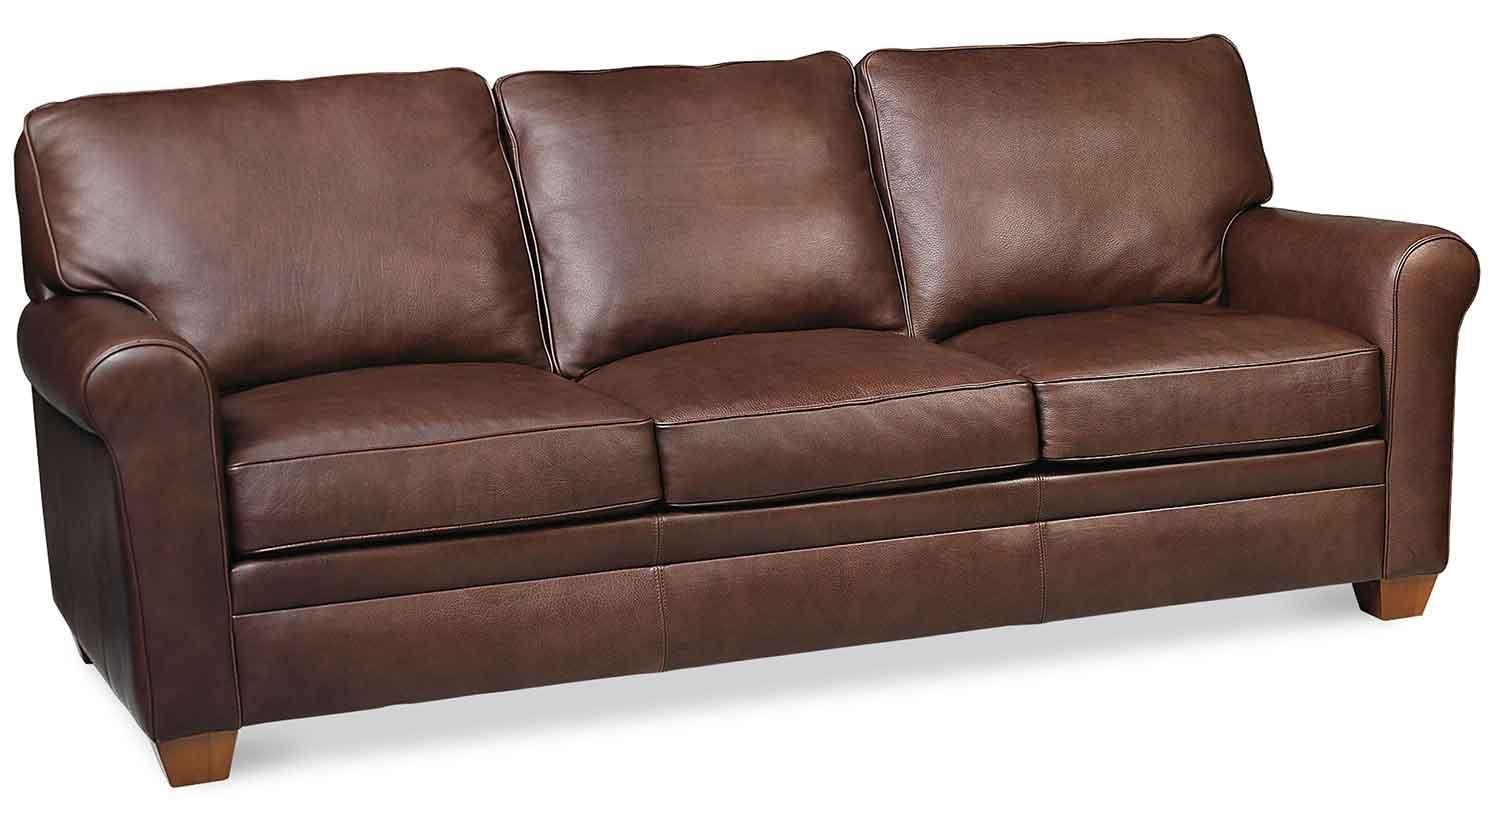 Circle Furniture – Braxton Sofa | Leather Sofas Danvers | Circle Regarding Braxton Sofa (View 4 of 20)